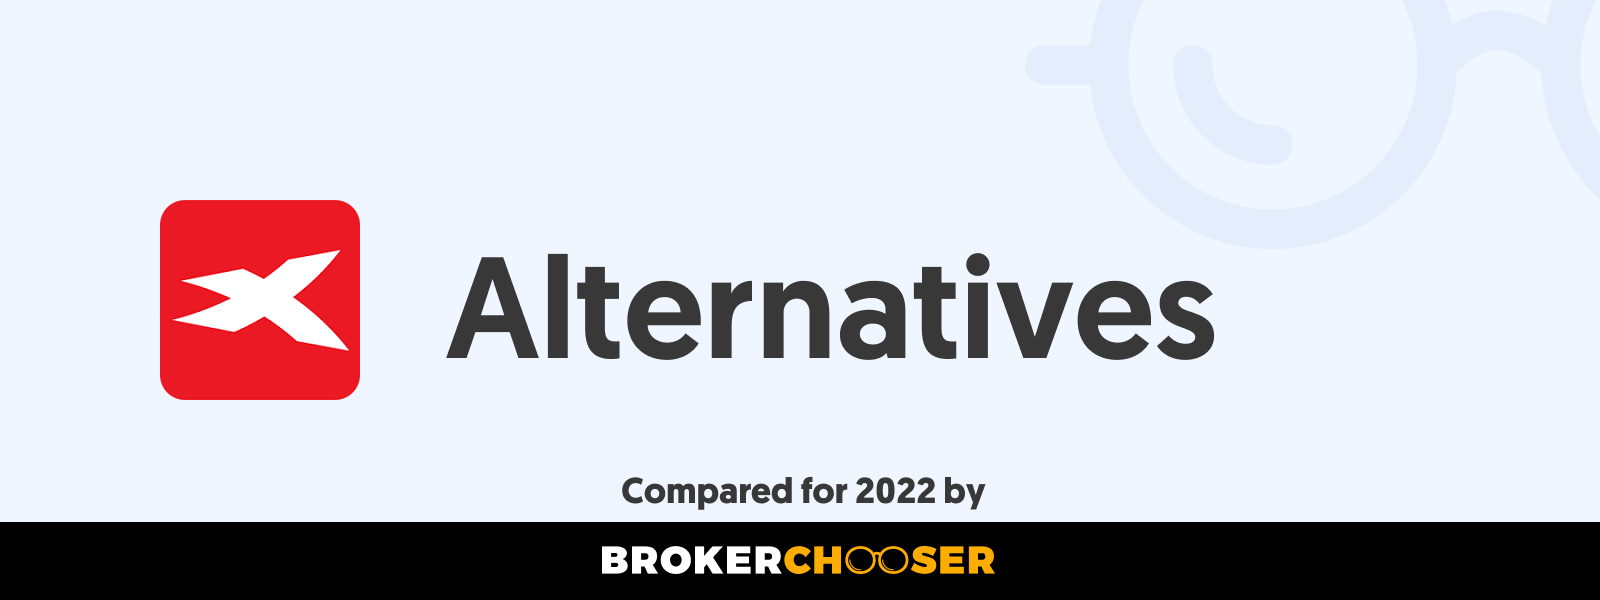 XTB Alternatives